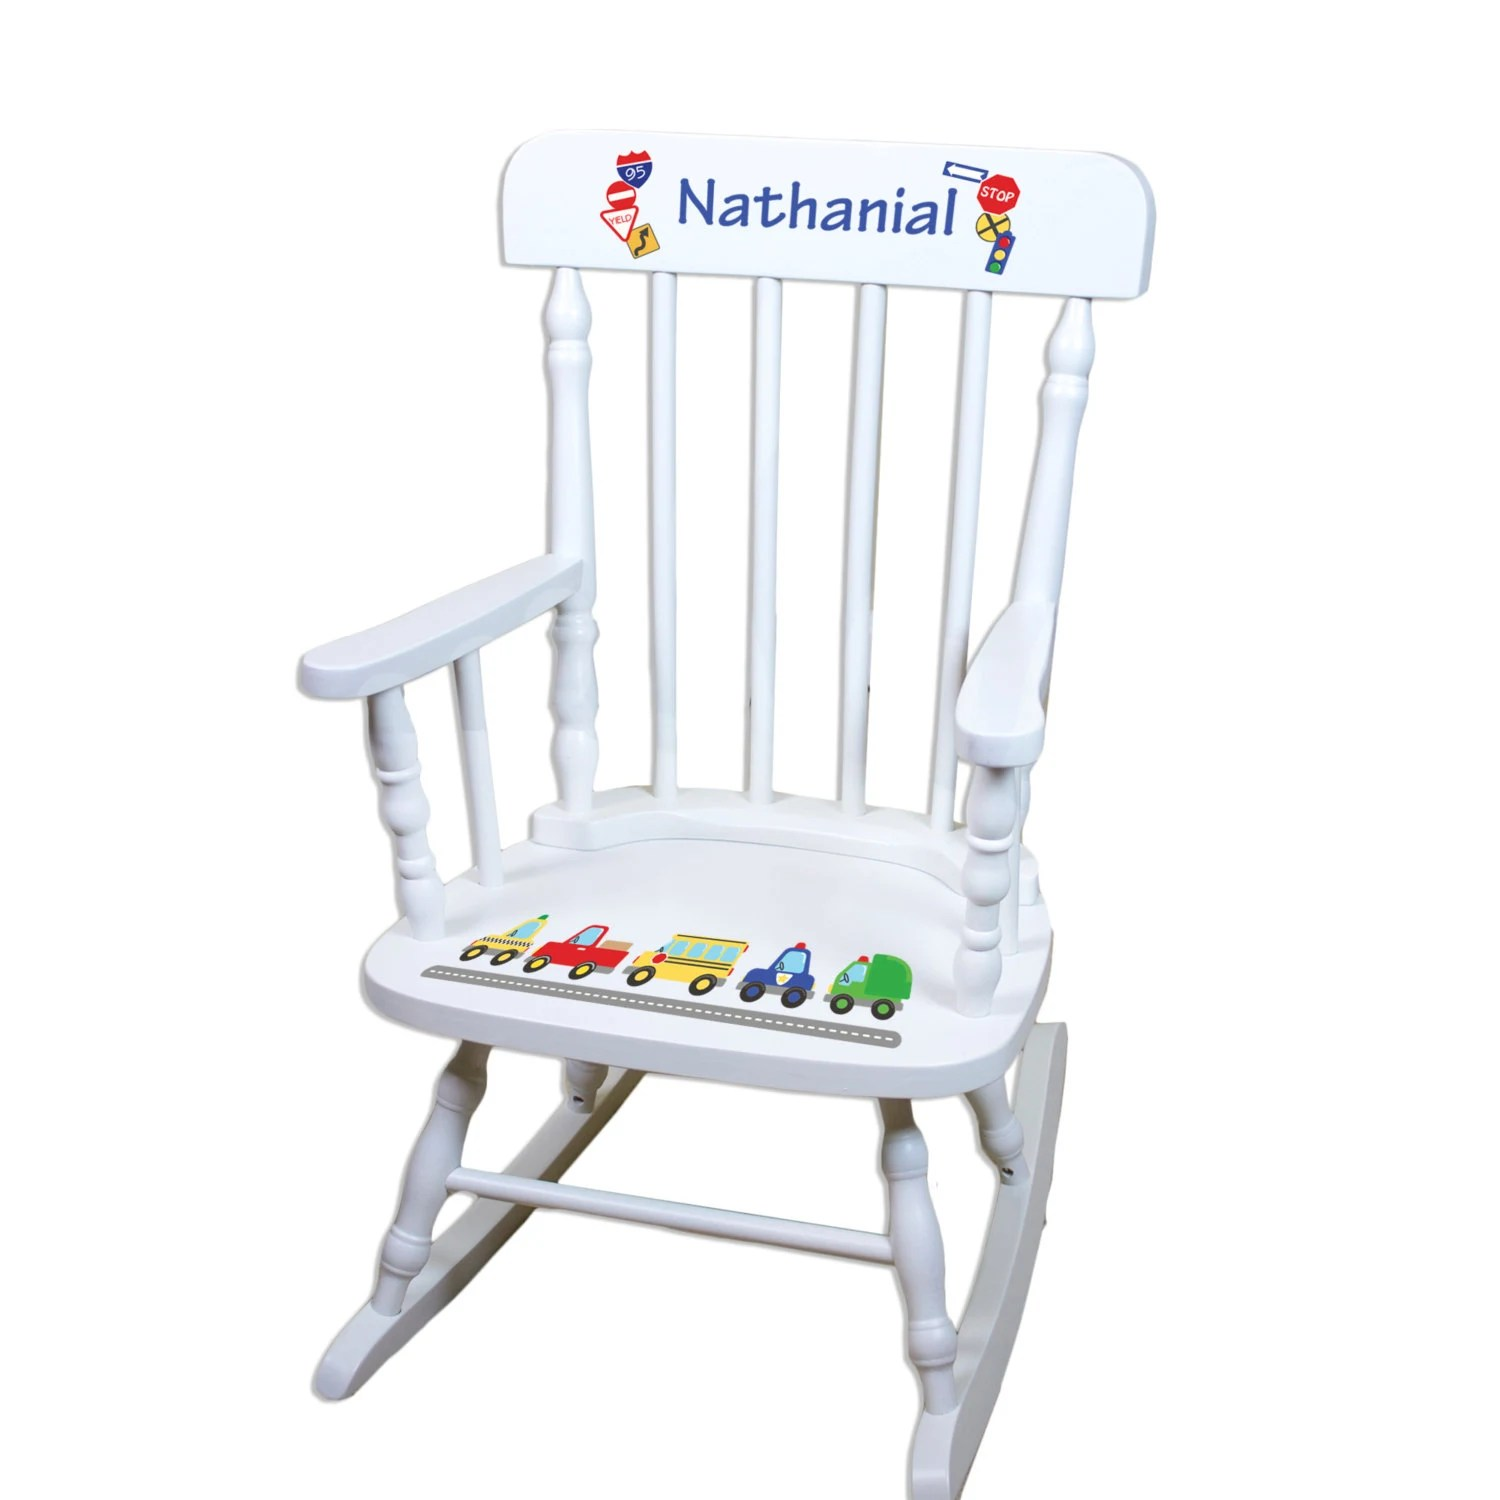 little rocking chairs for toddlers small apartment dining table and boys chair cars police trucks personalized childs